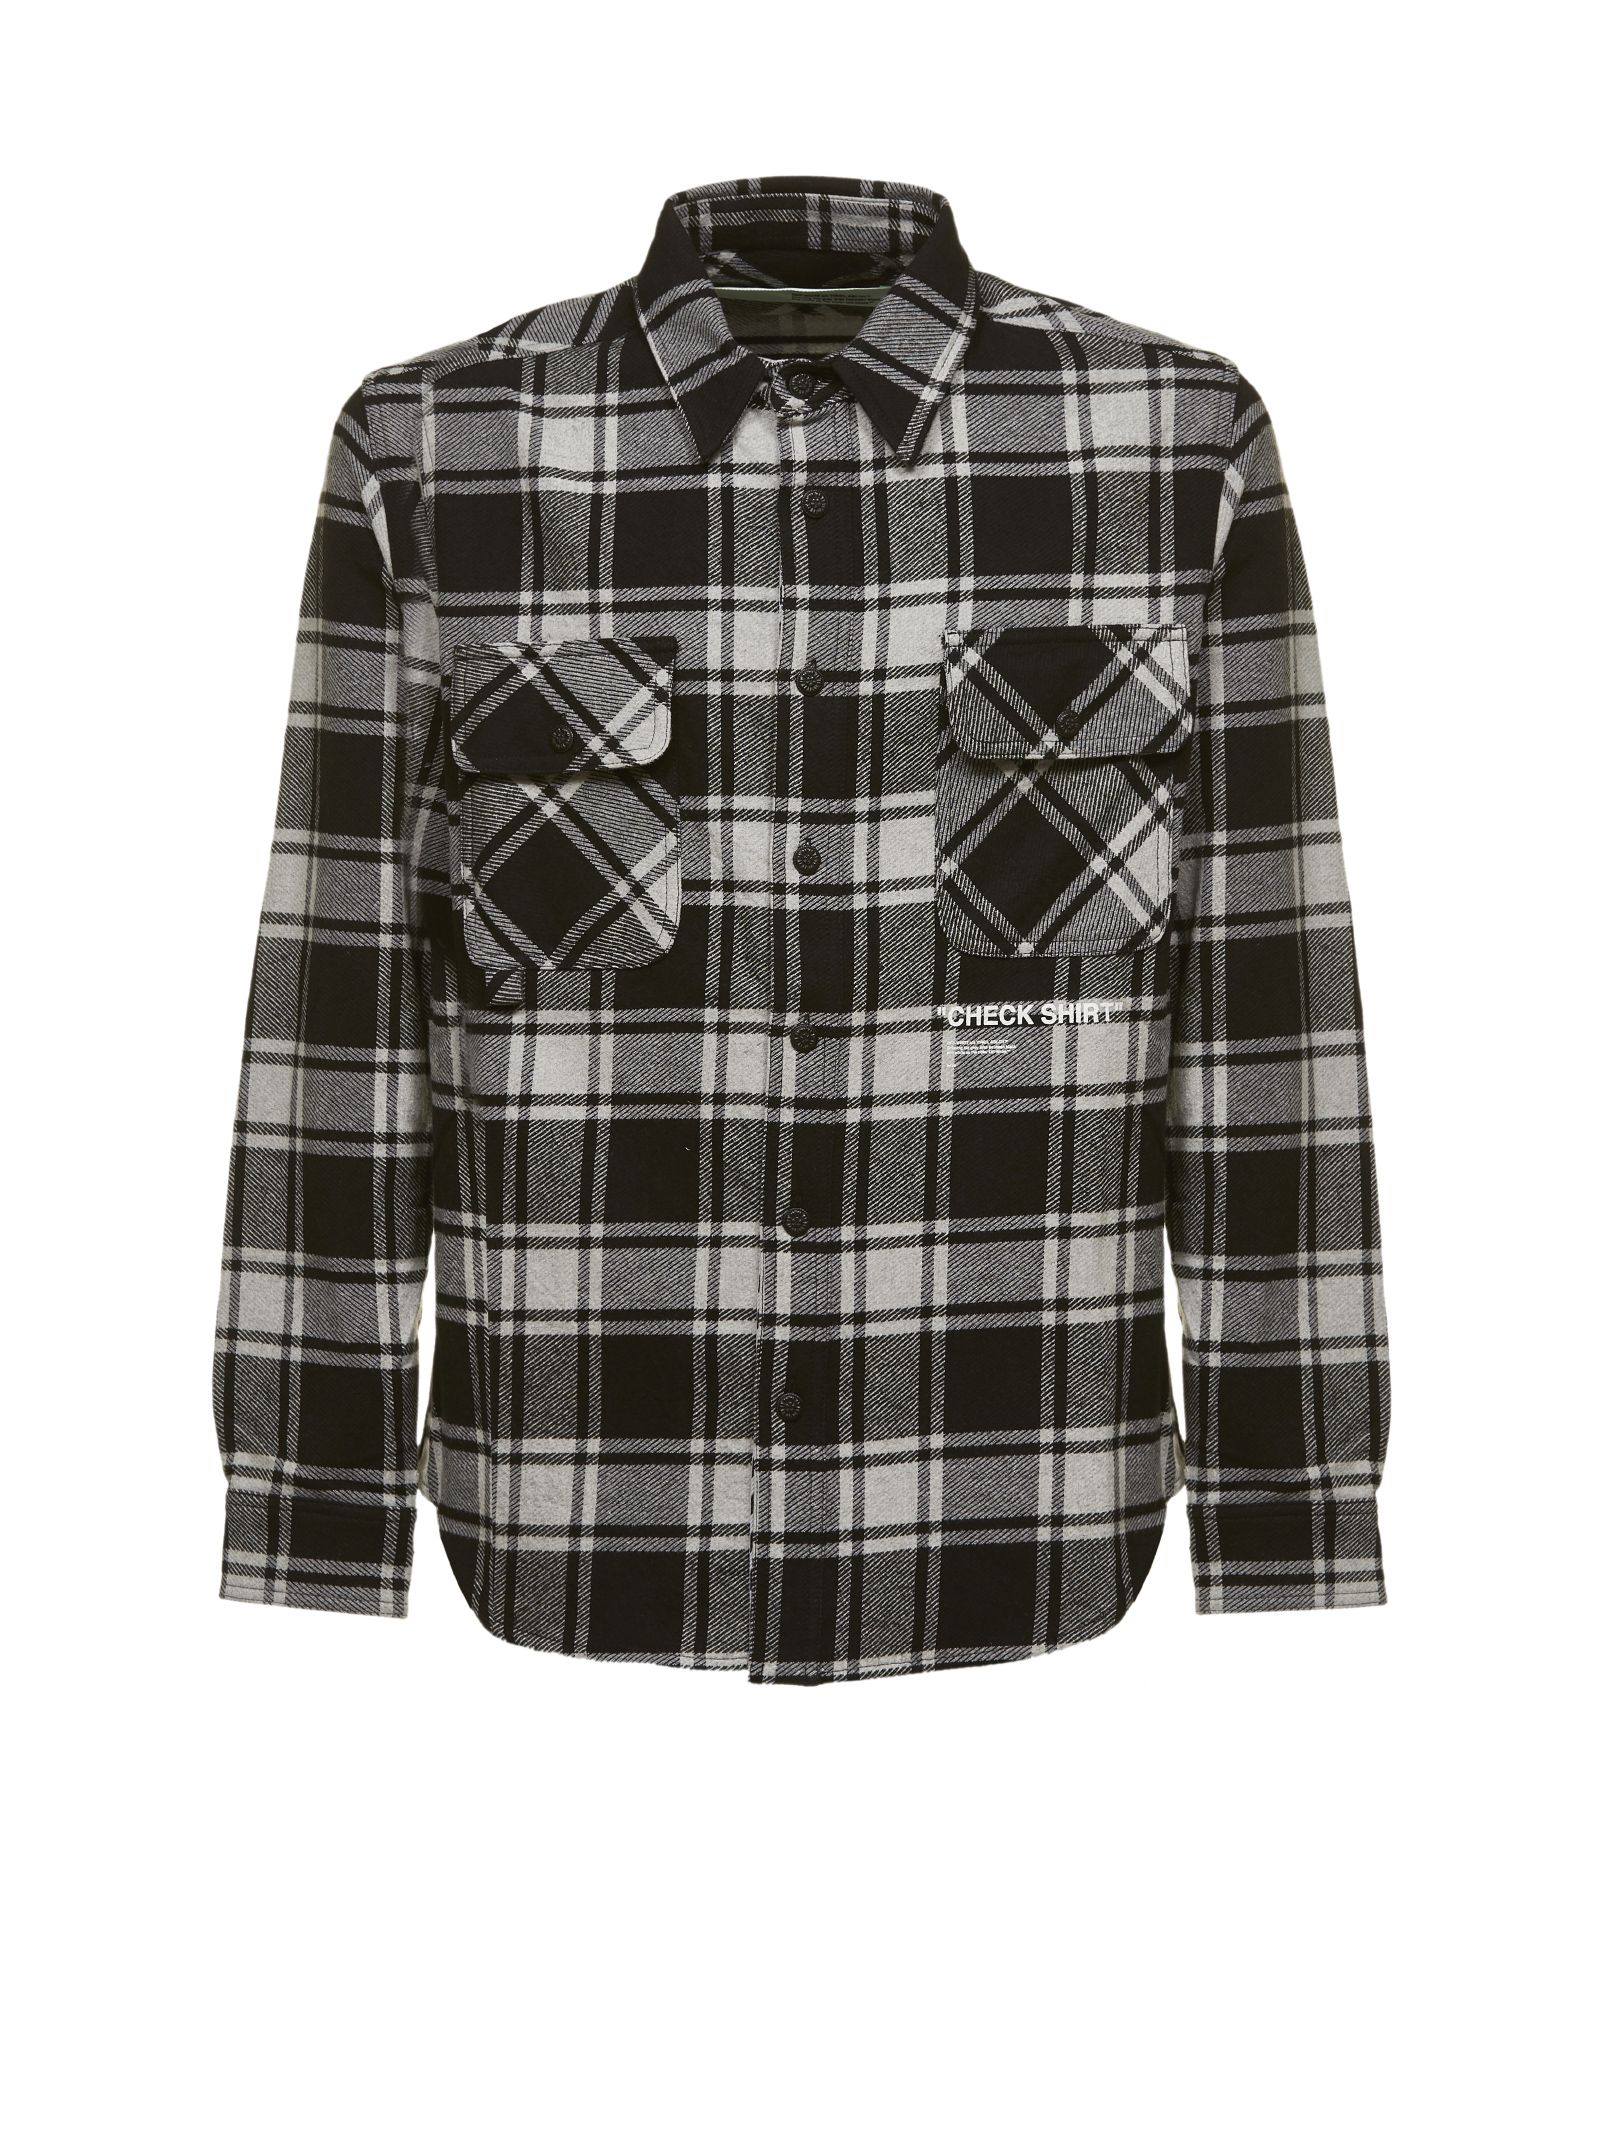 OFF-WHITE QUOTE FLANNEL SHIRT